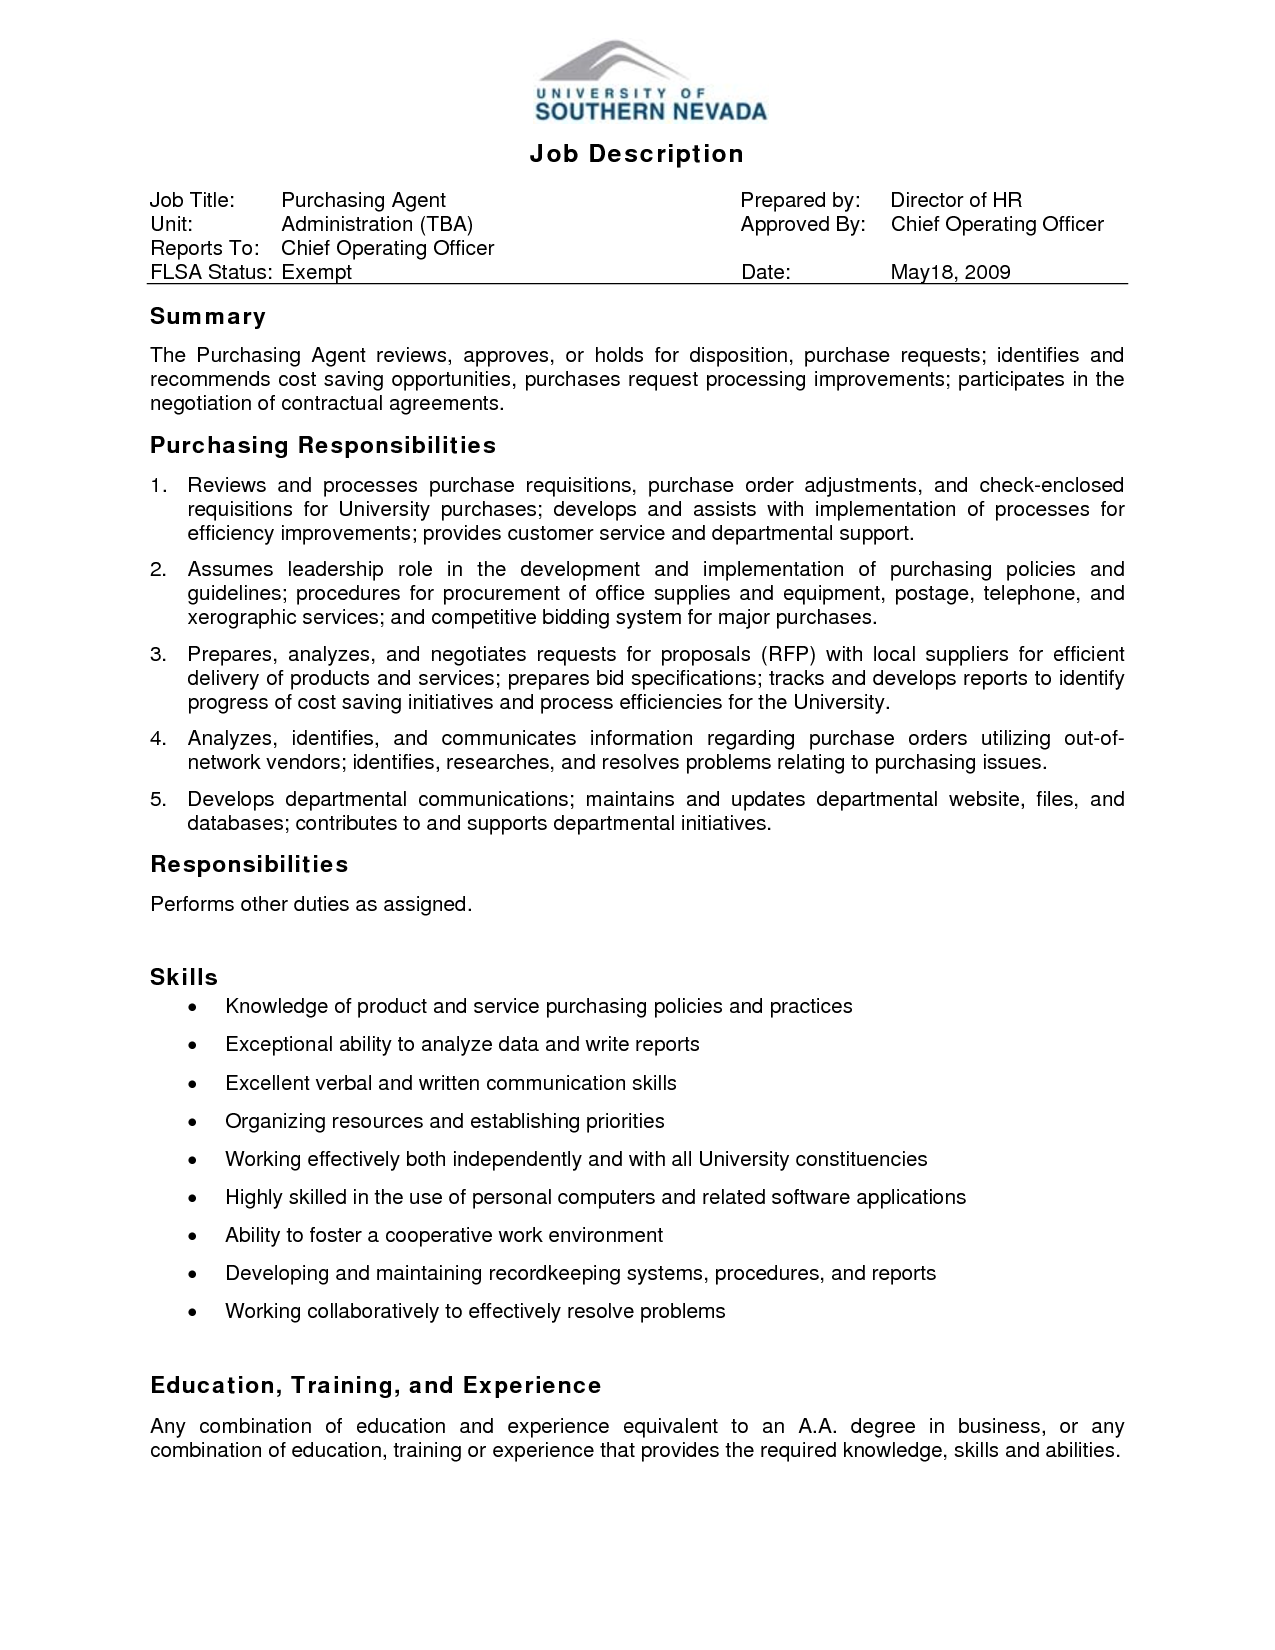 Charming Administrative Assistant Duties Cover Letter Job Description Administrative  Assistant Throughout Administrative Assistant Description